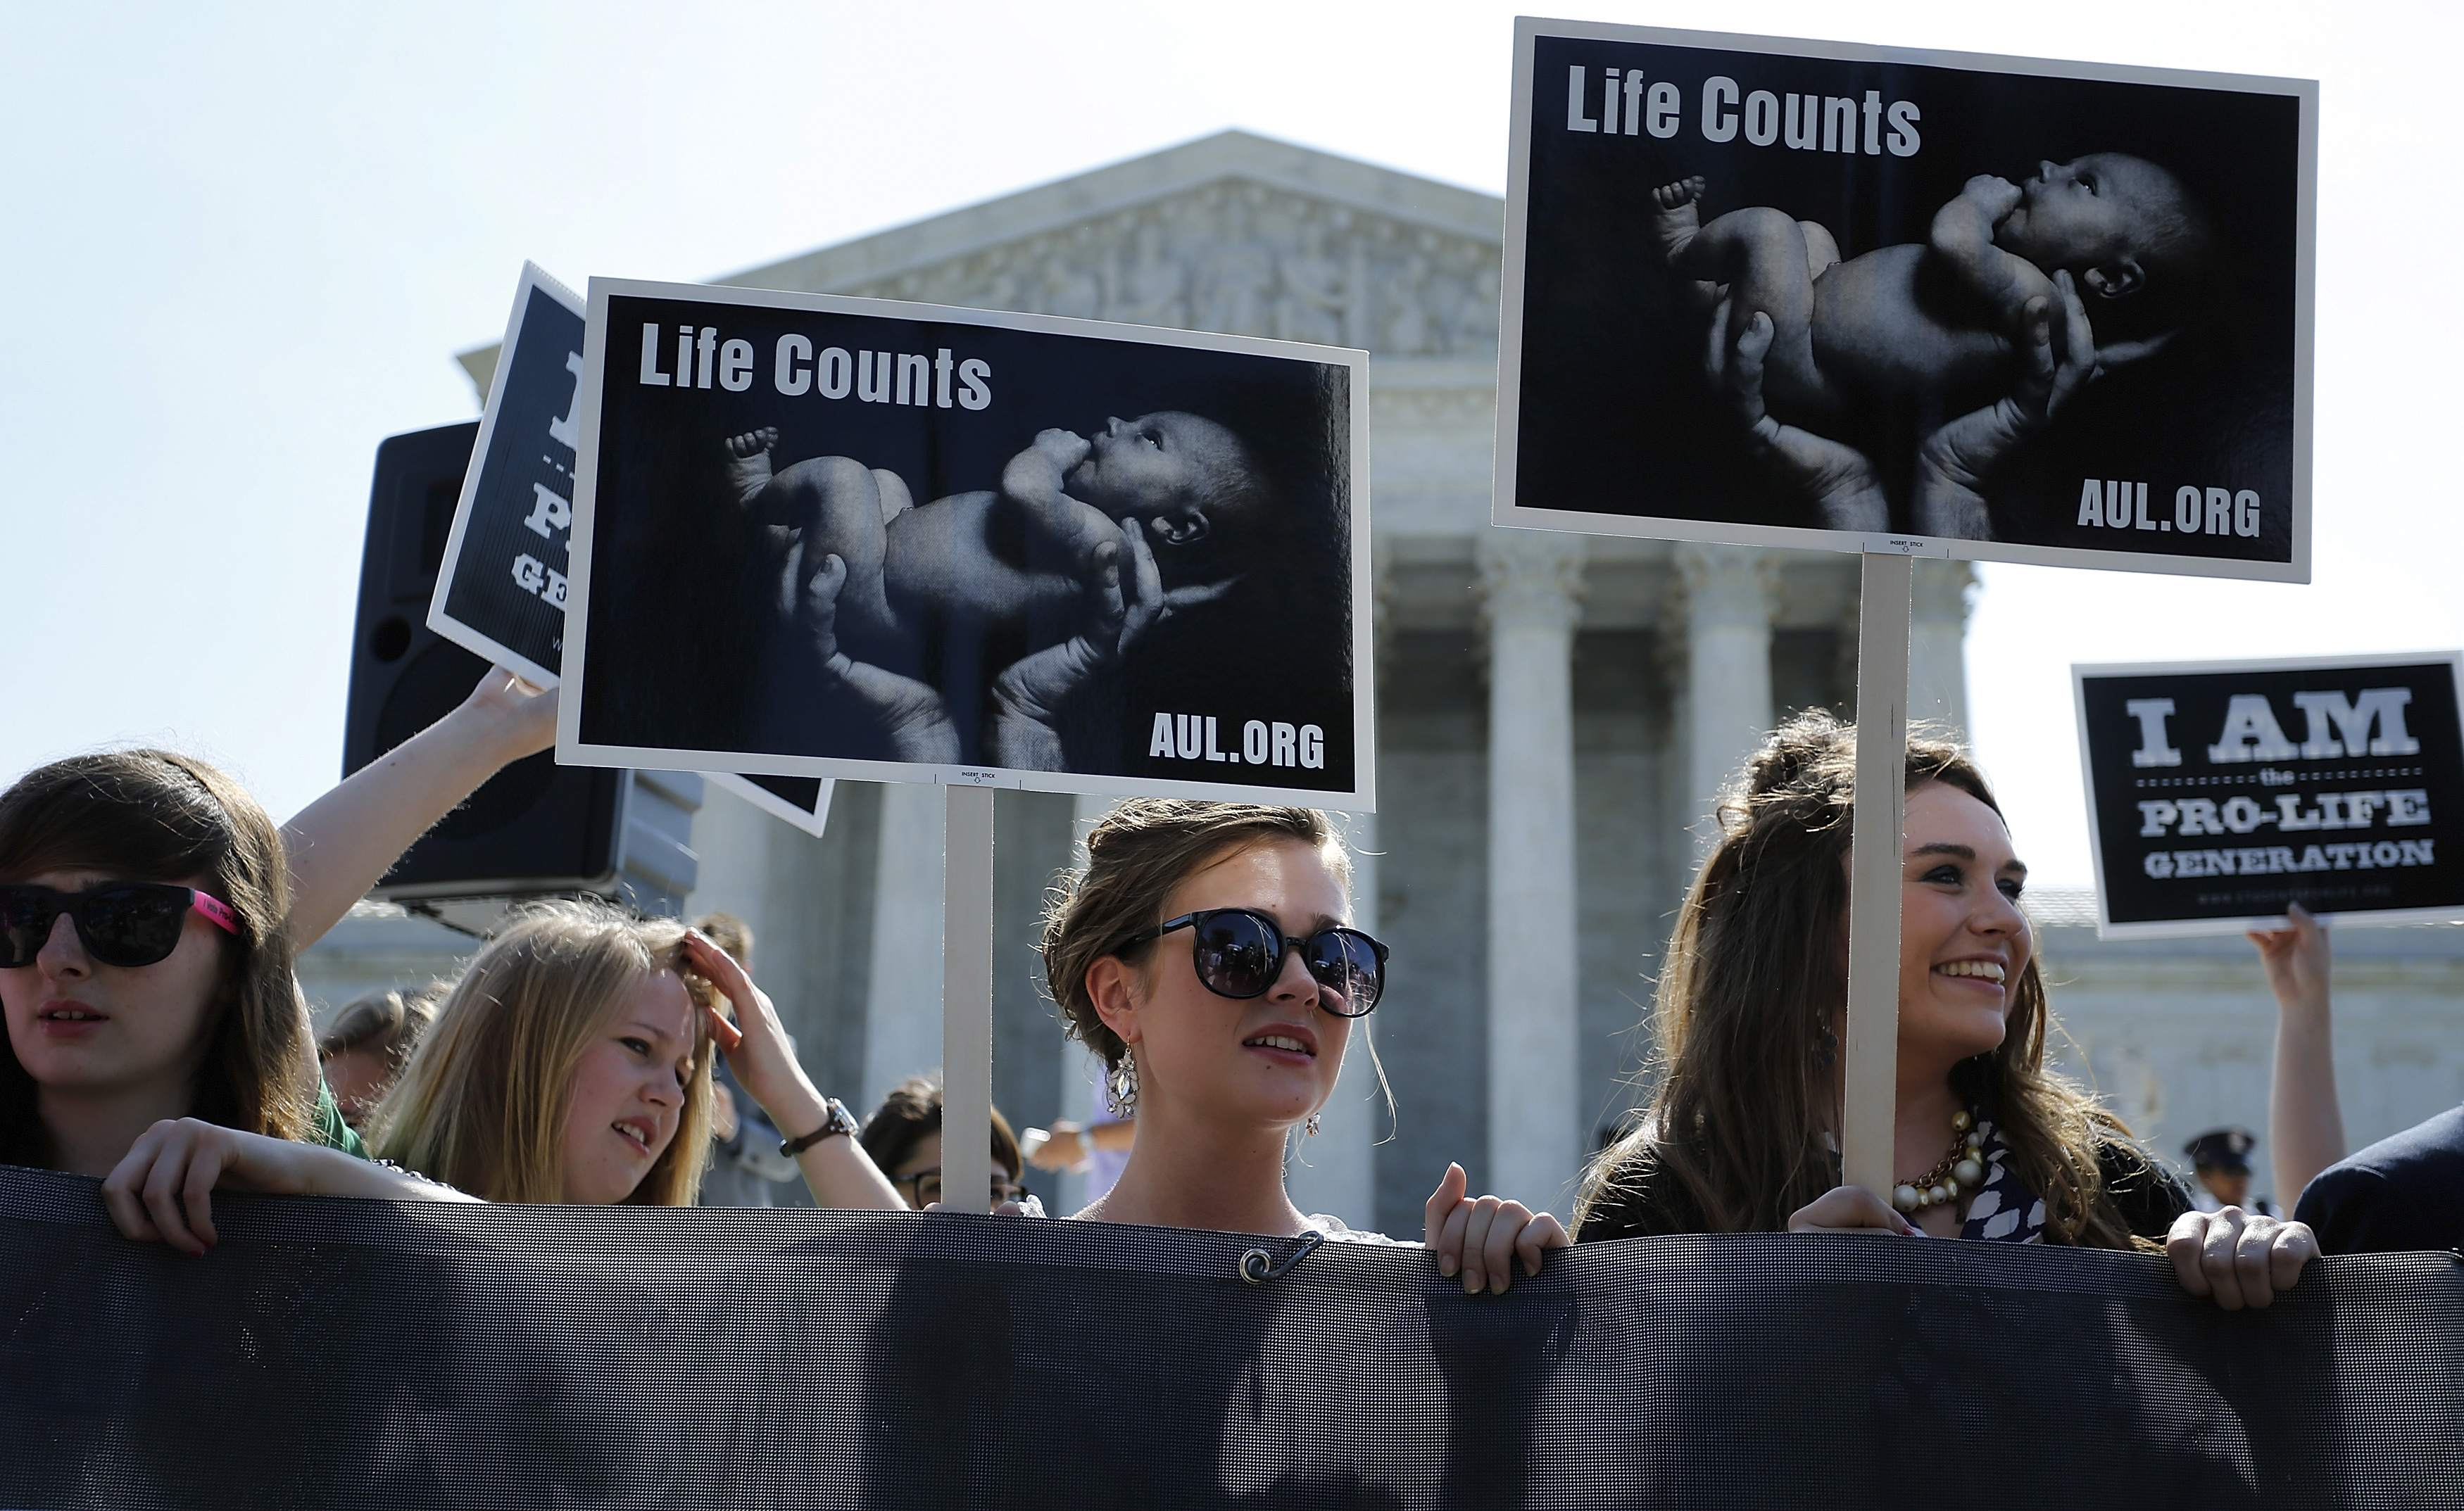 Anti-abortion demonstrators wait for the U.S. Supreme Court ruling in the Hobby Lobby case to be announced in Washington